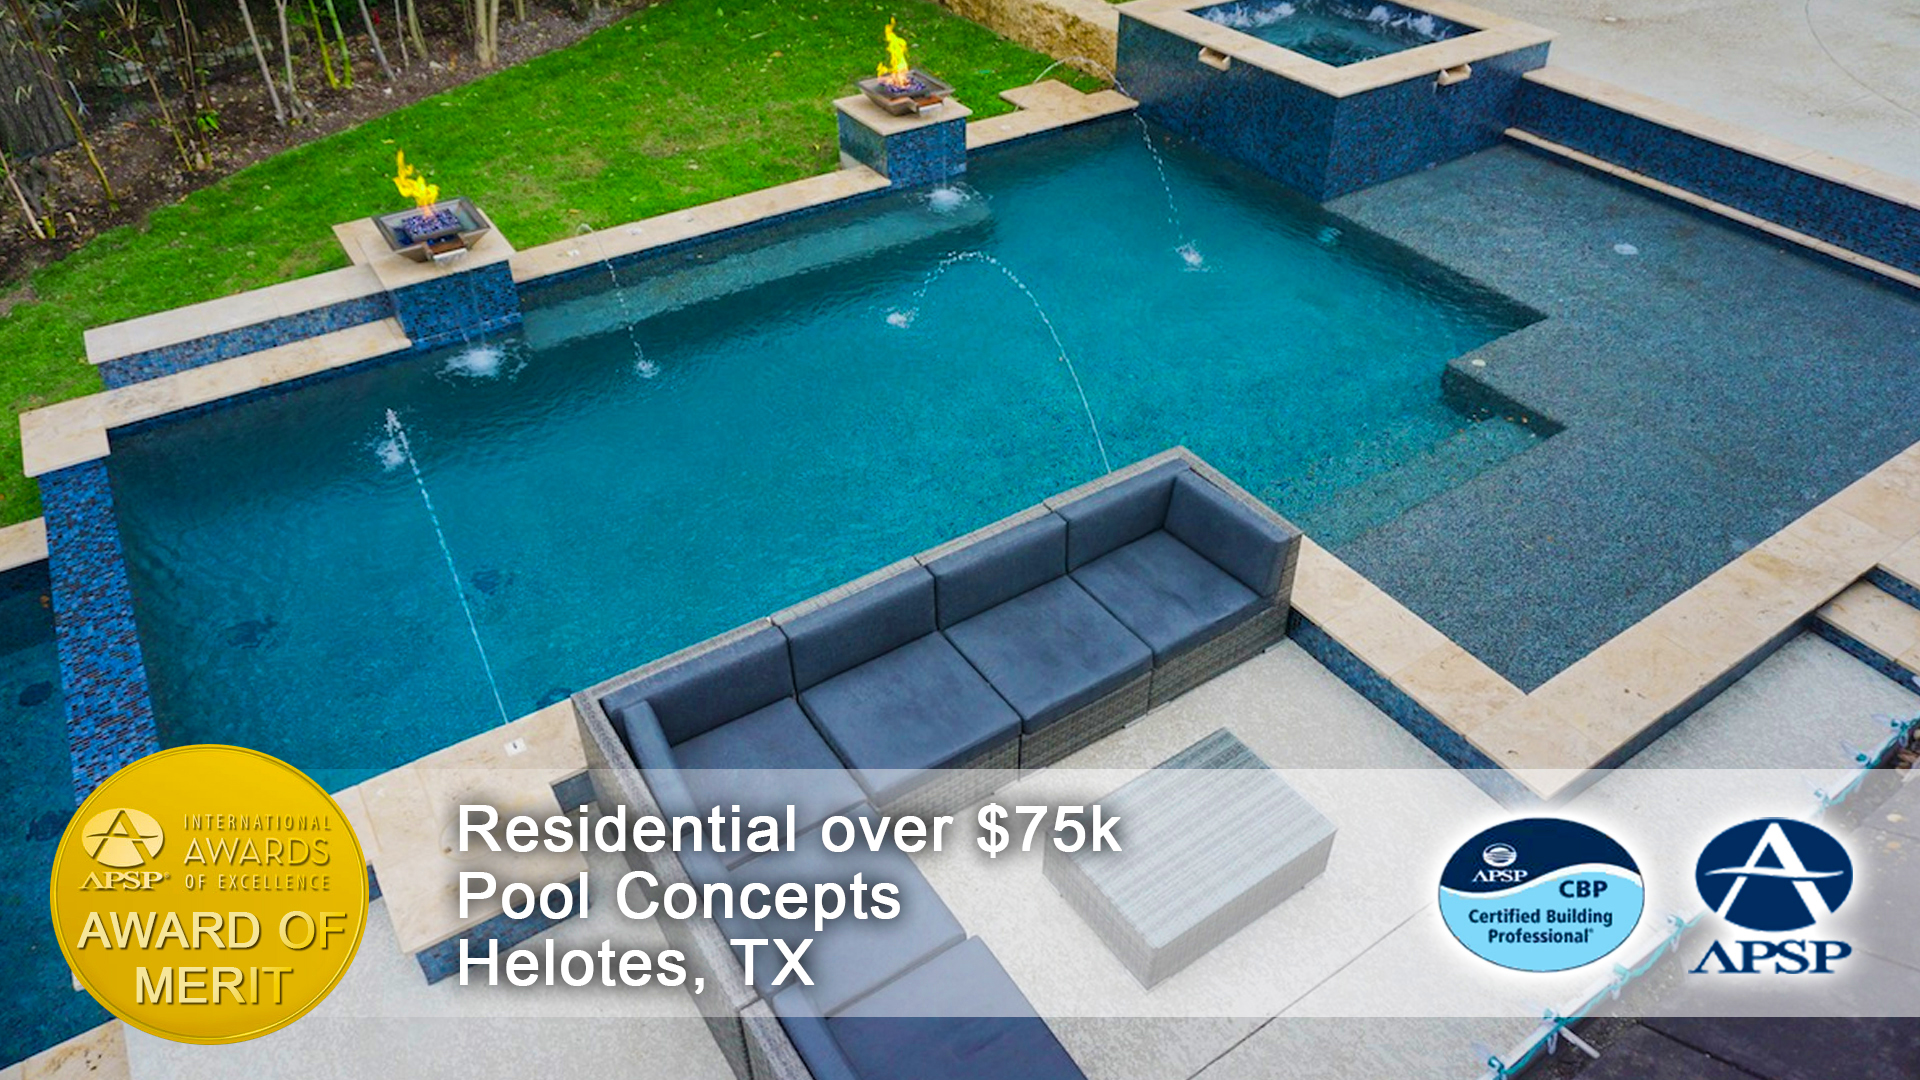 San antonio swimming pool builder pool concepts for Pool design concepts llc